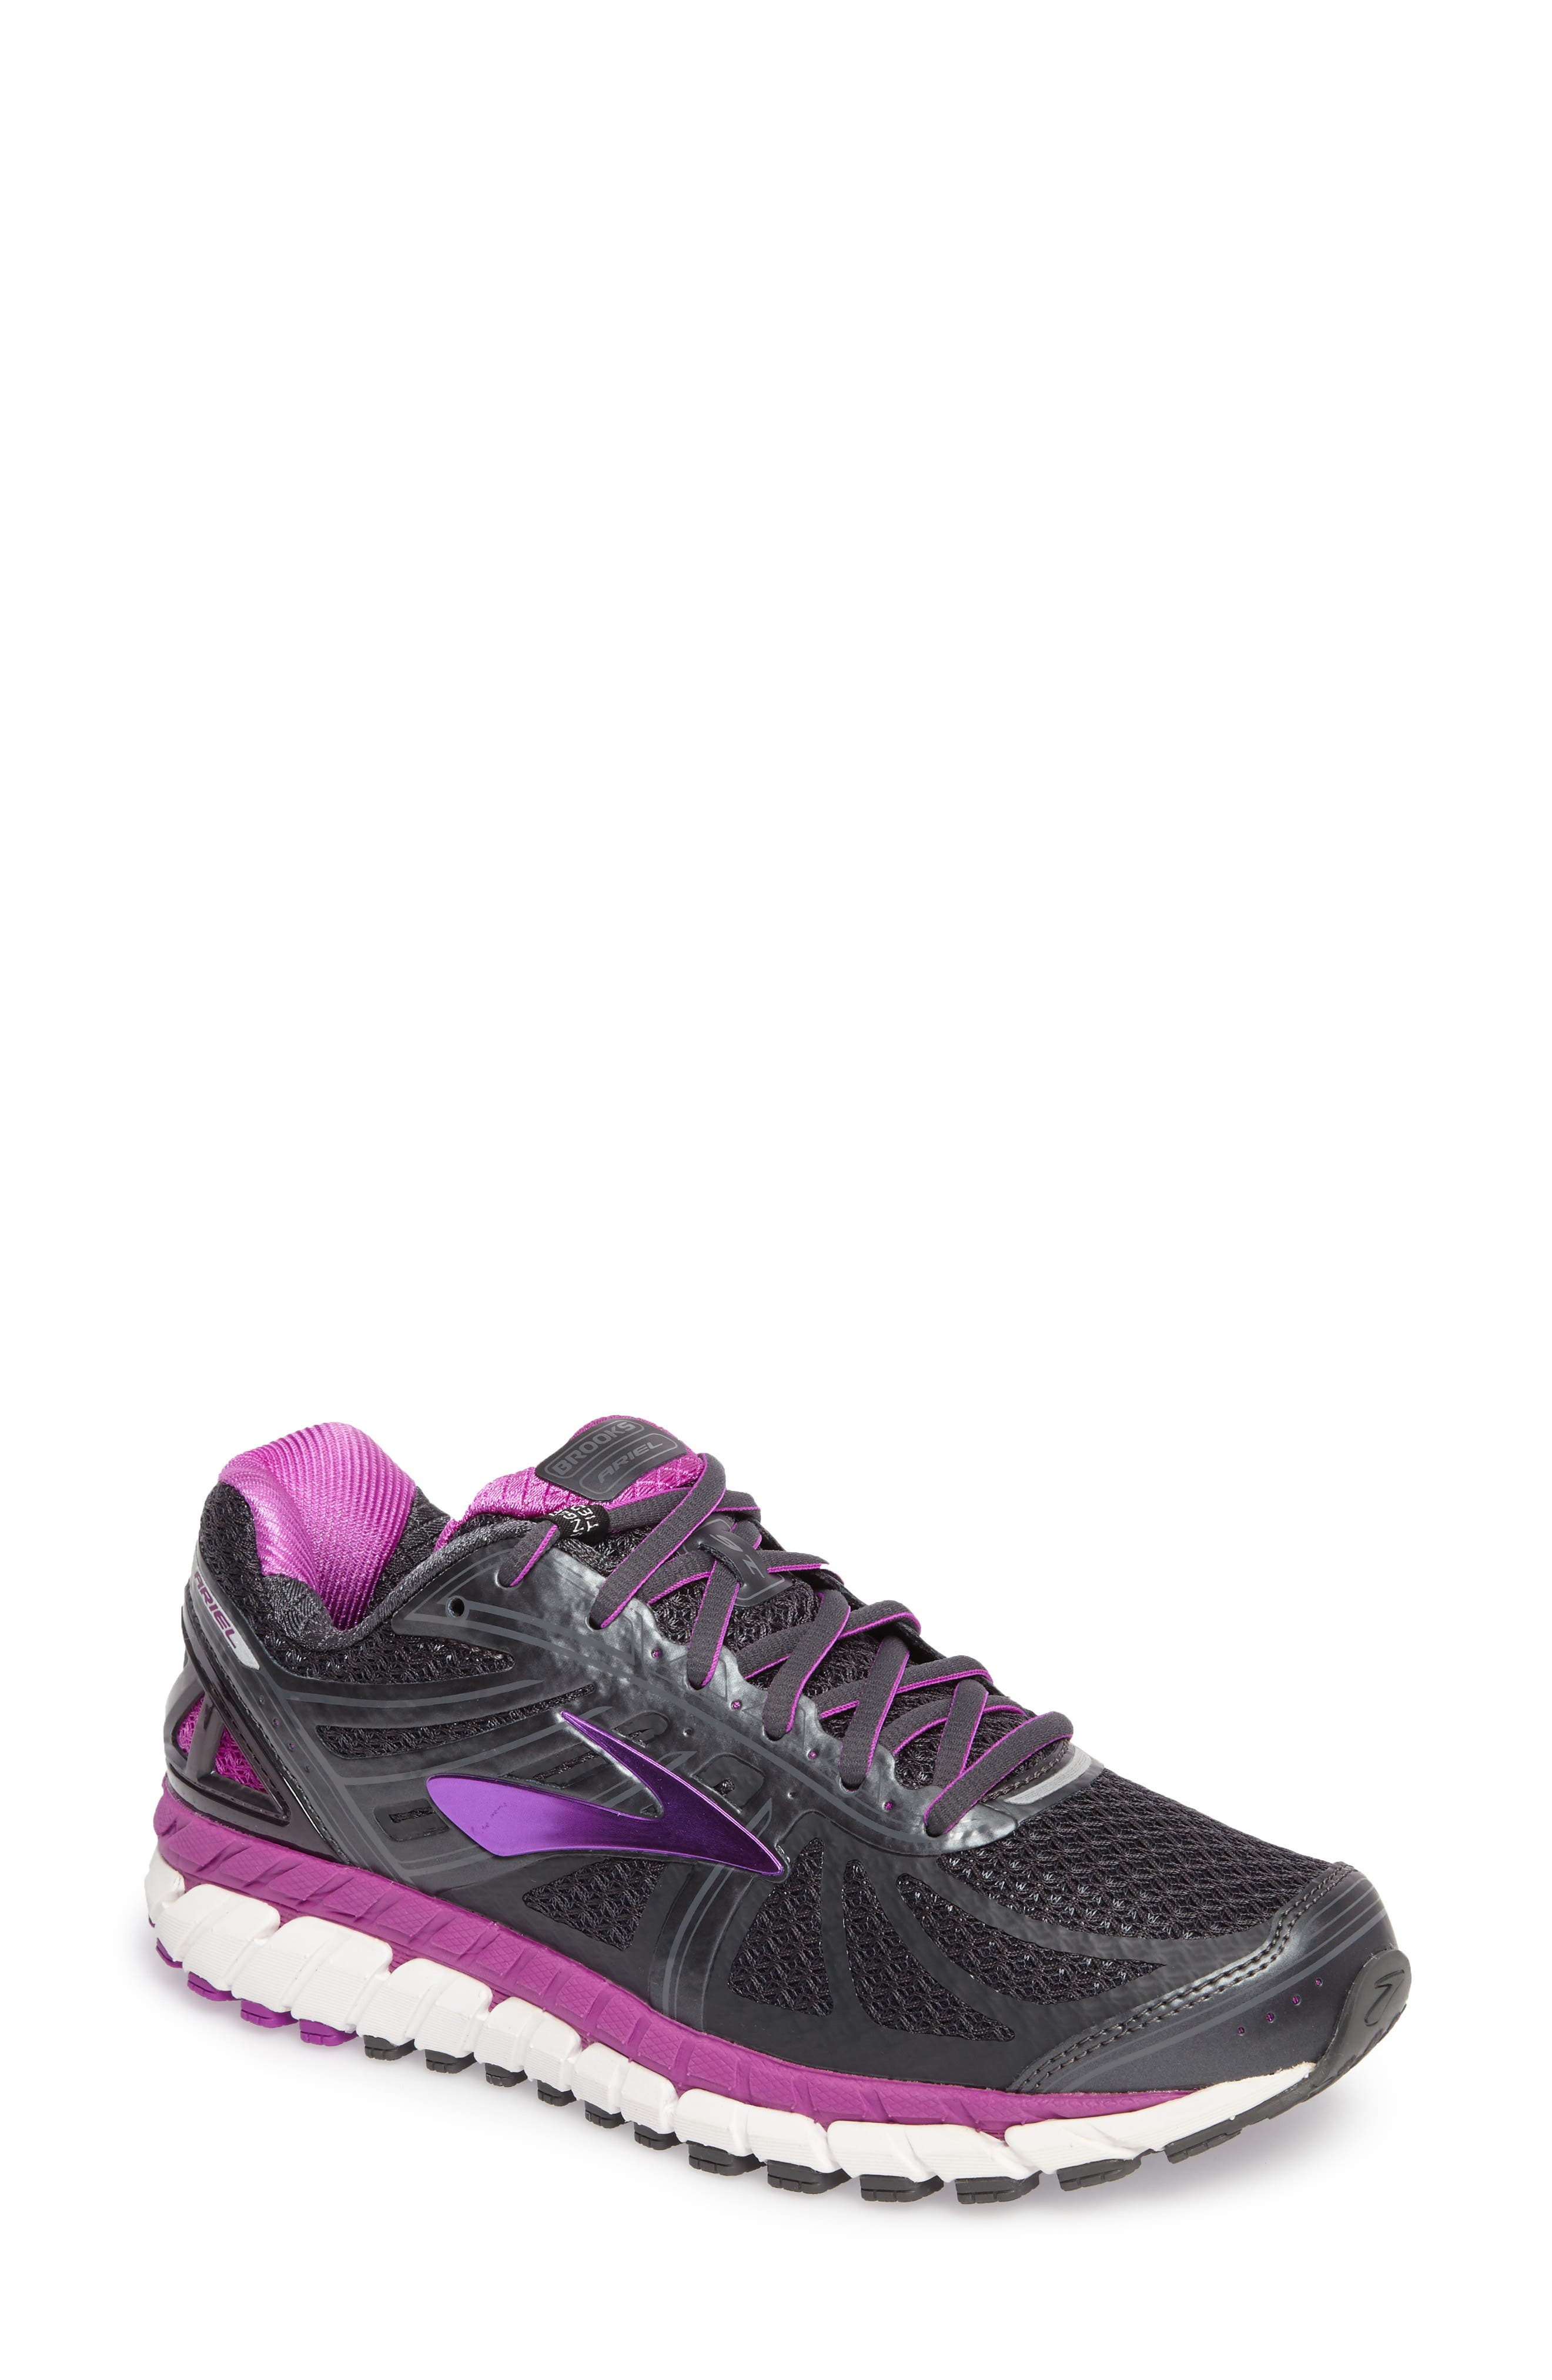 'Ariel 16' Running Shoe,                         Main,                         color, ANTHRACITE/ PURPLE/ GREY